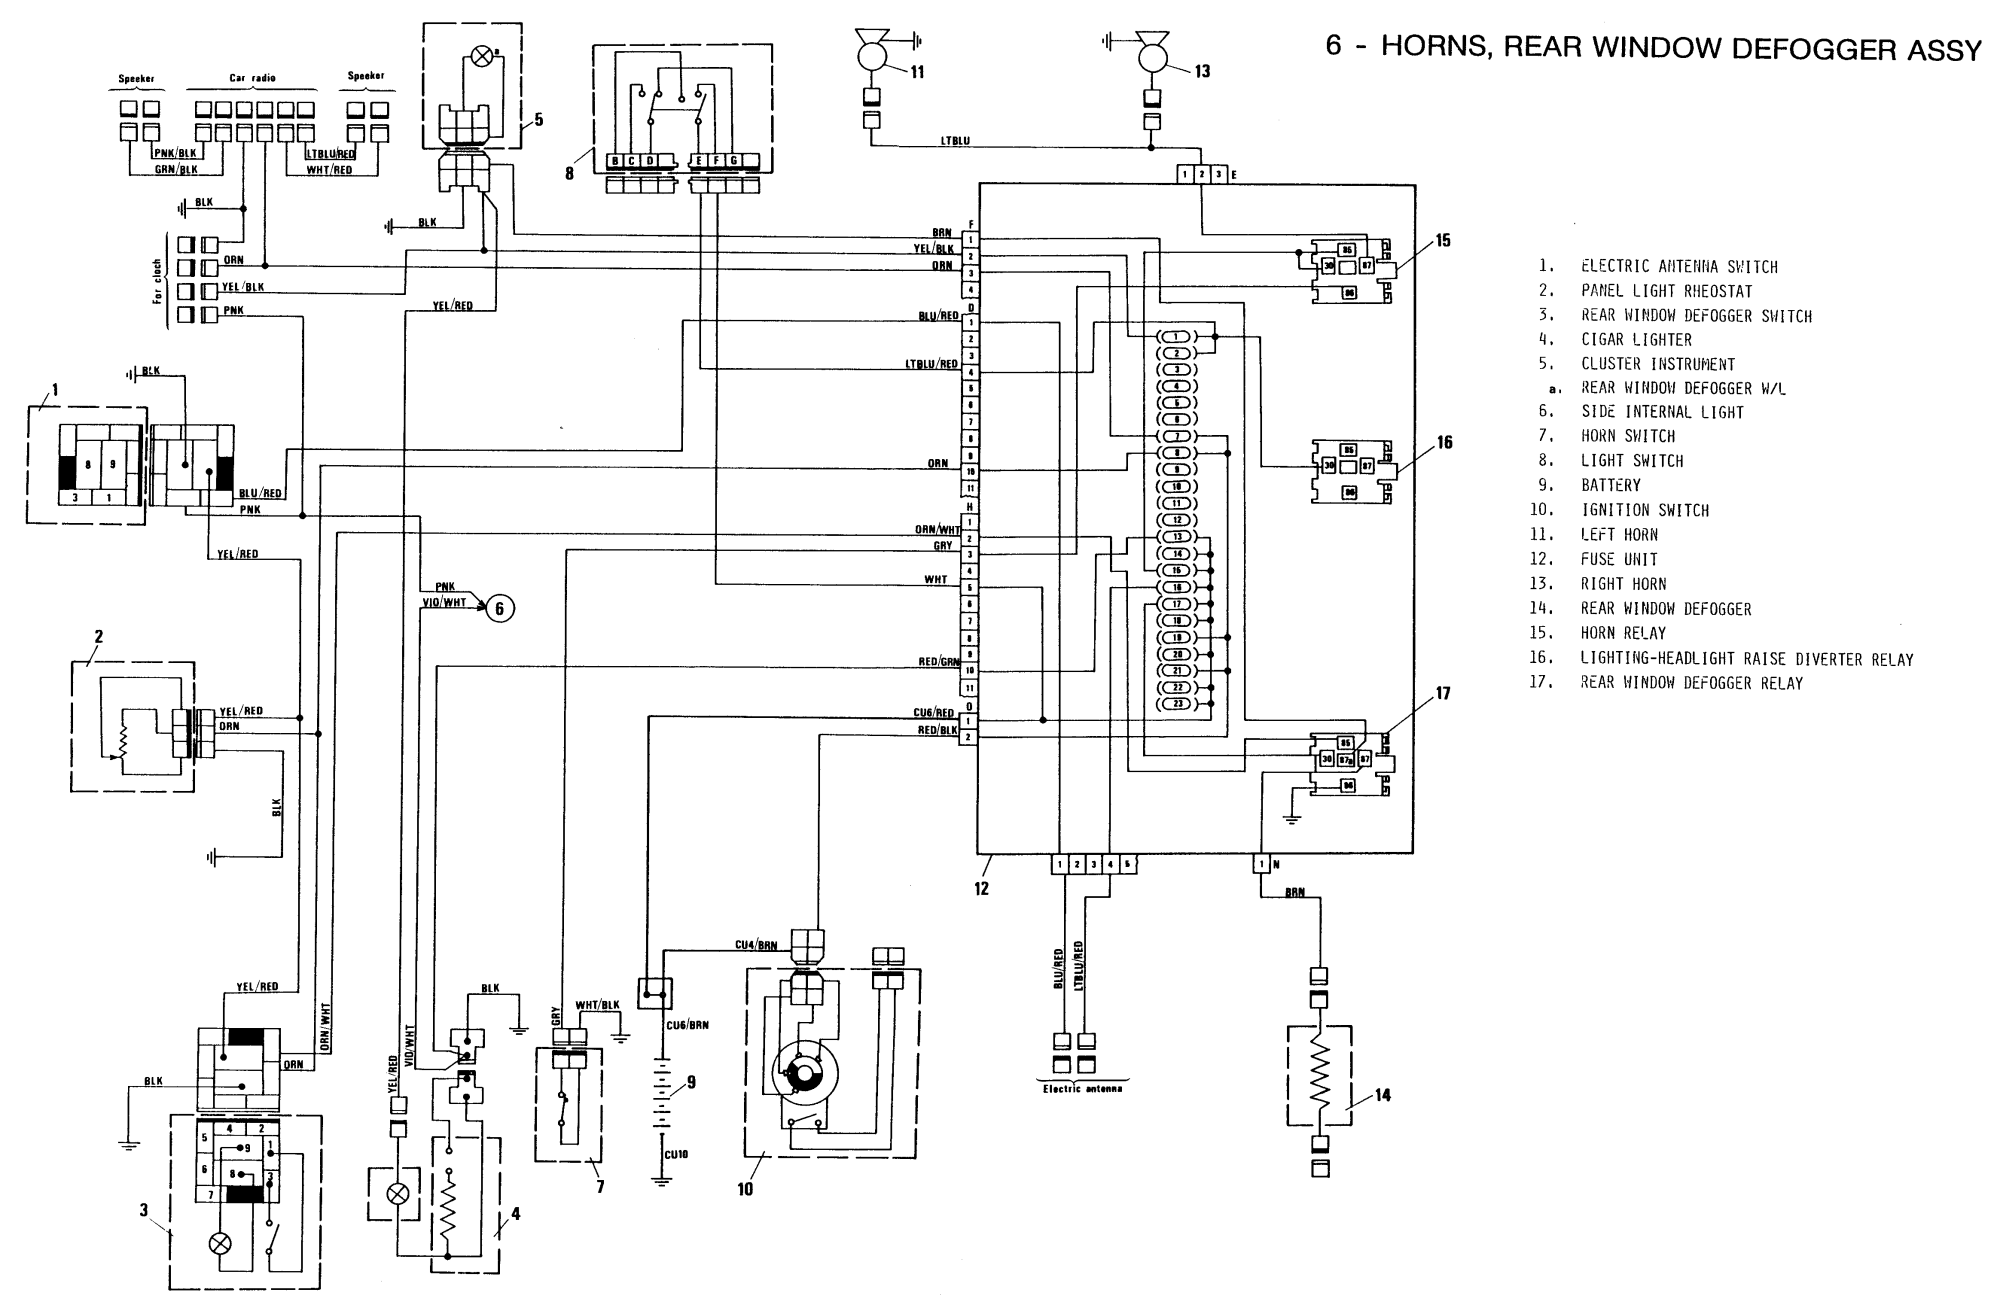 hight resolution of fiat vacuum diagram home wiring diagram addition saab 9 5 vacuum hose diagram on seicento fiat engine diagram